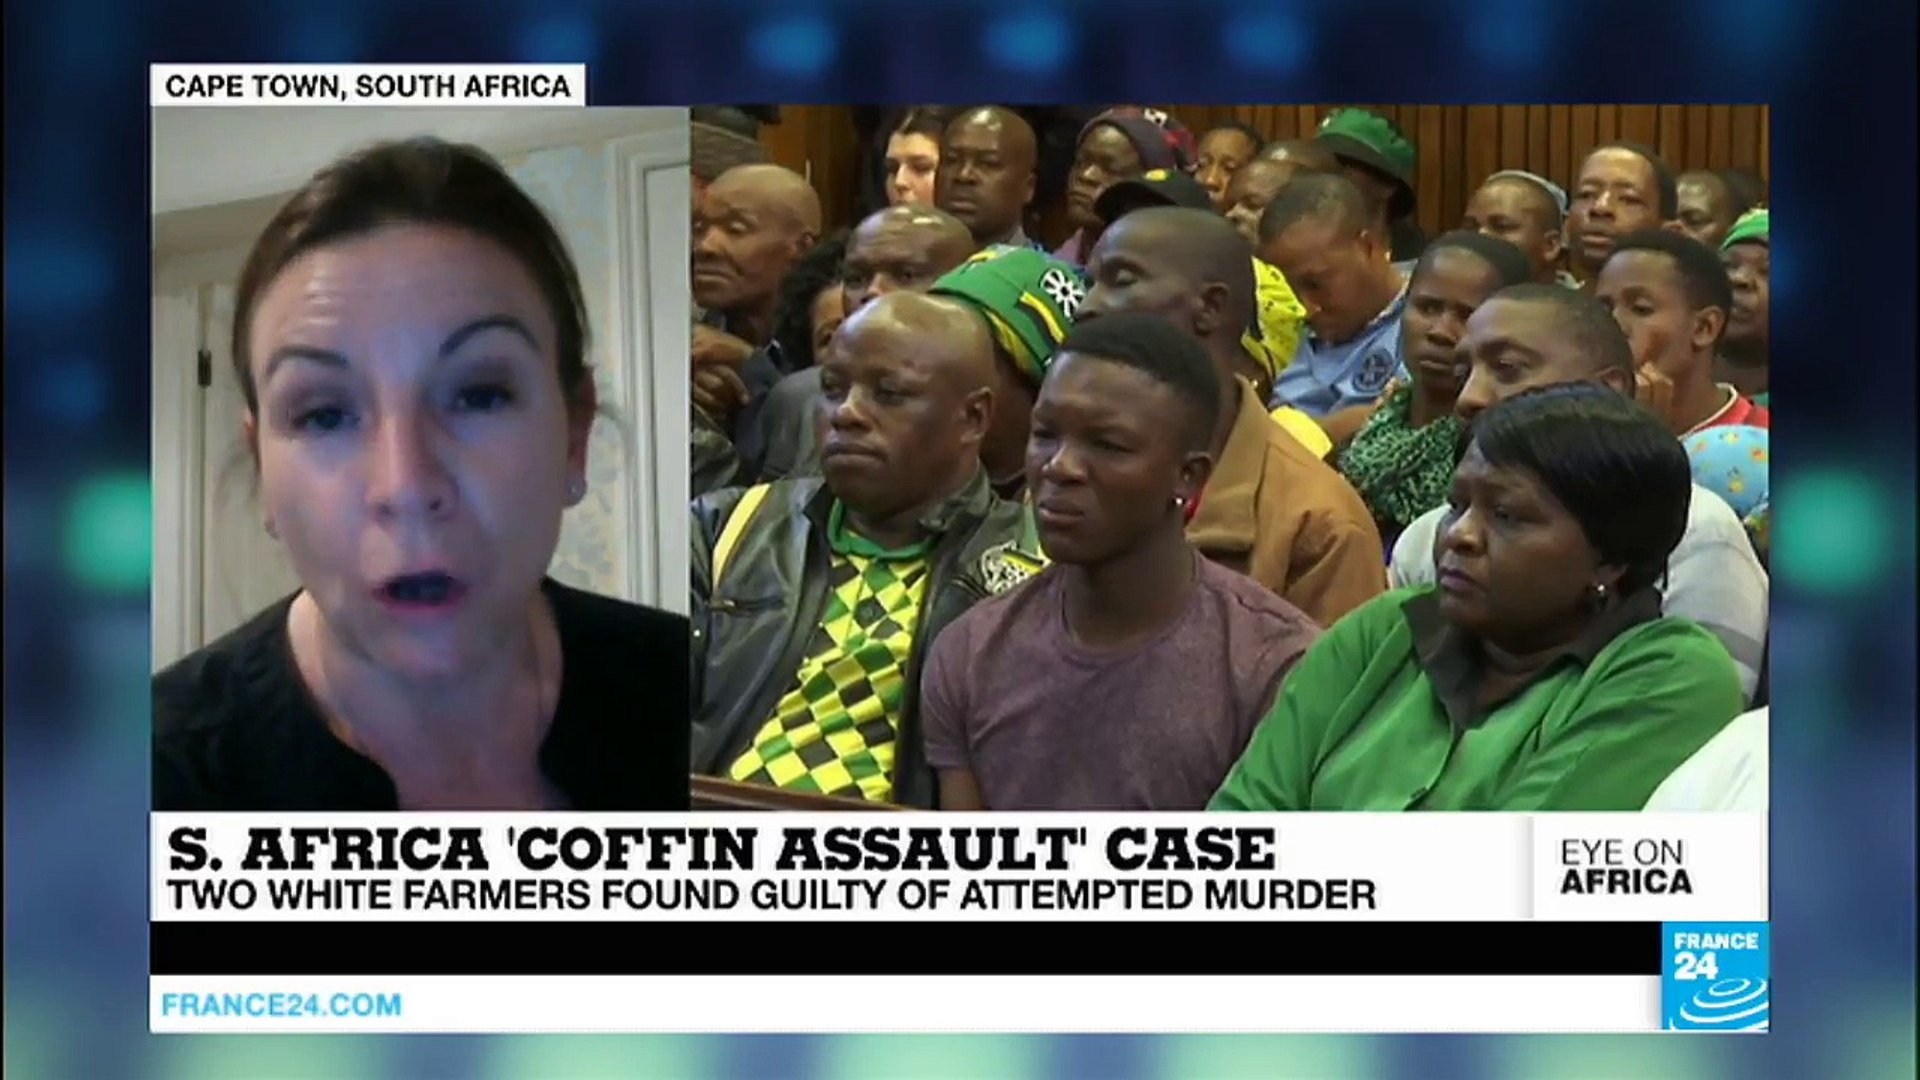 Two white South African farmers found guilty in the 'coffin assault' case